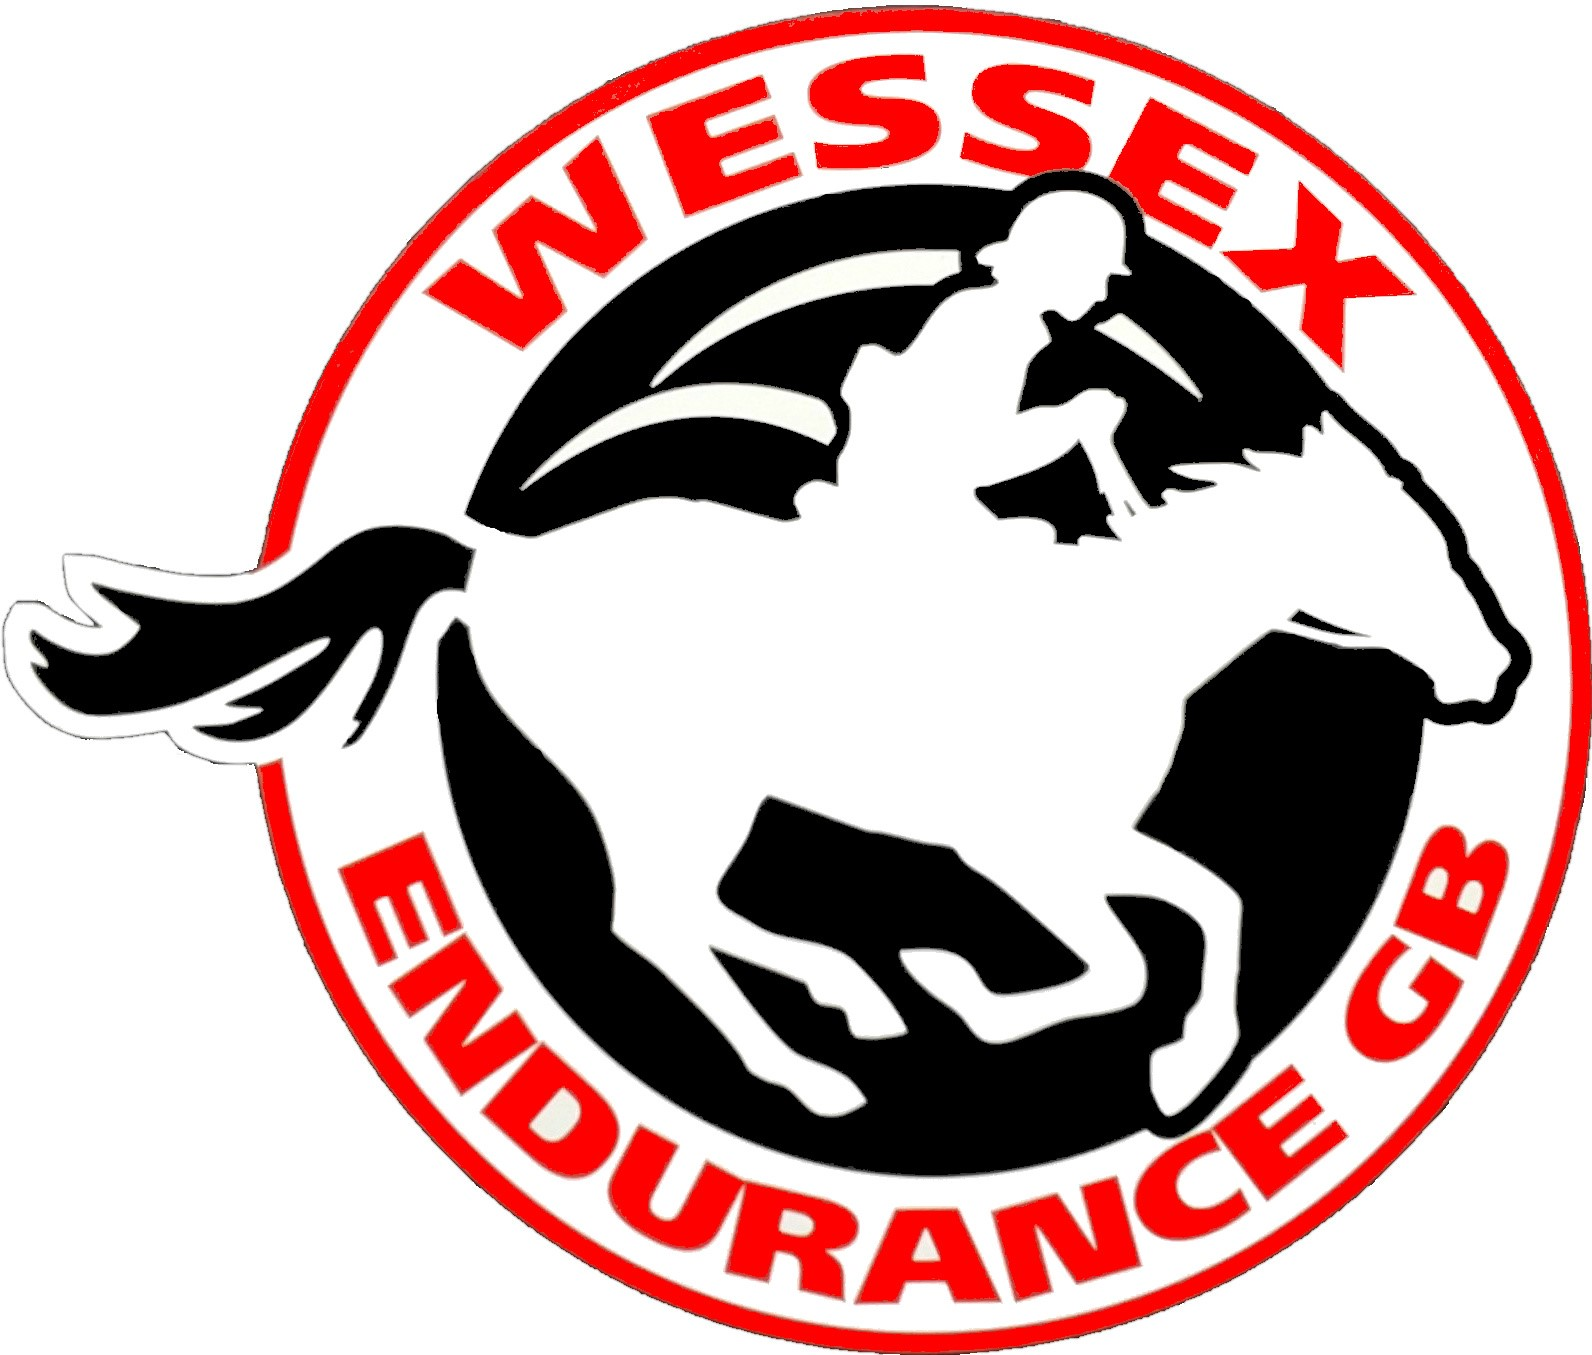 Wessex Endurance Trailer/Lorry Decal